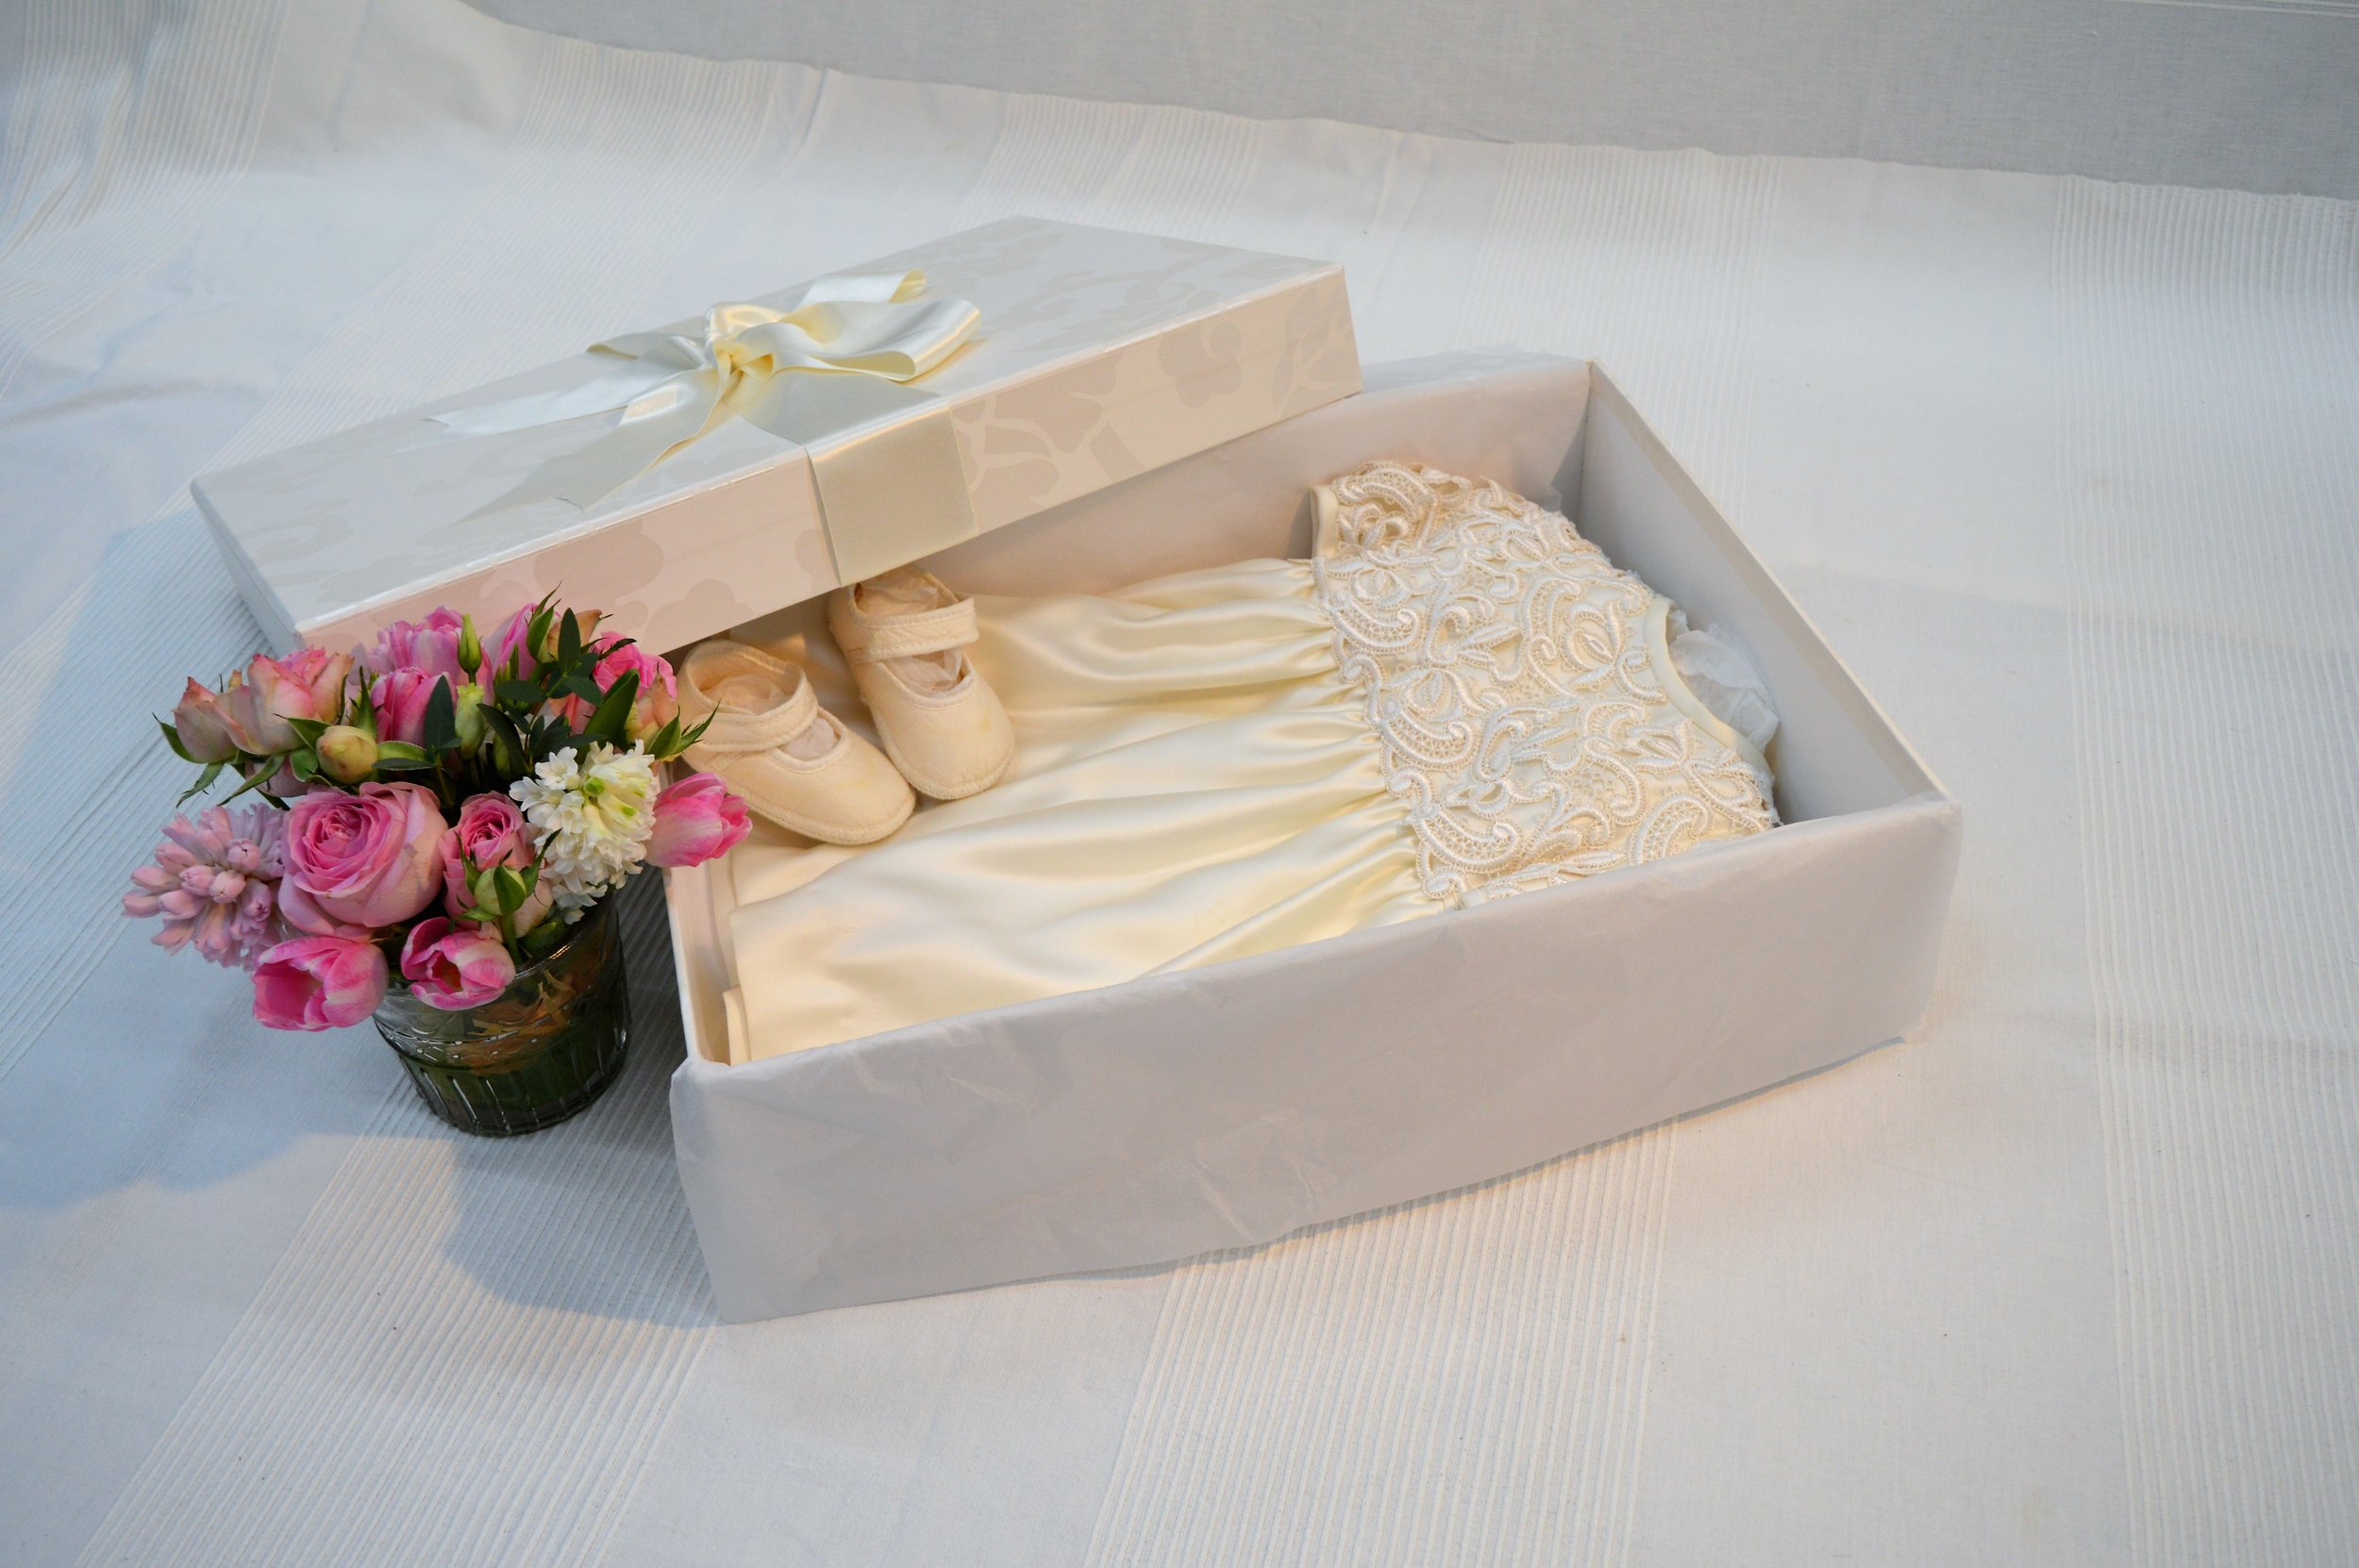 Christening gown & shoes.